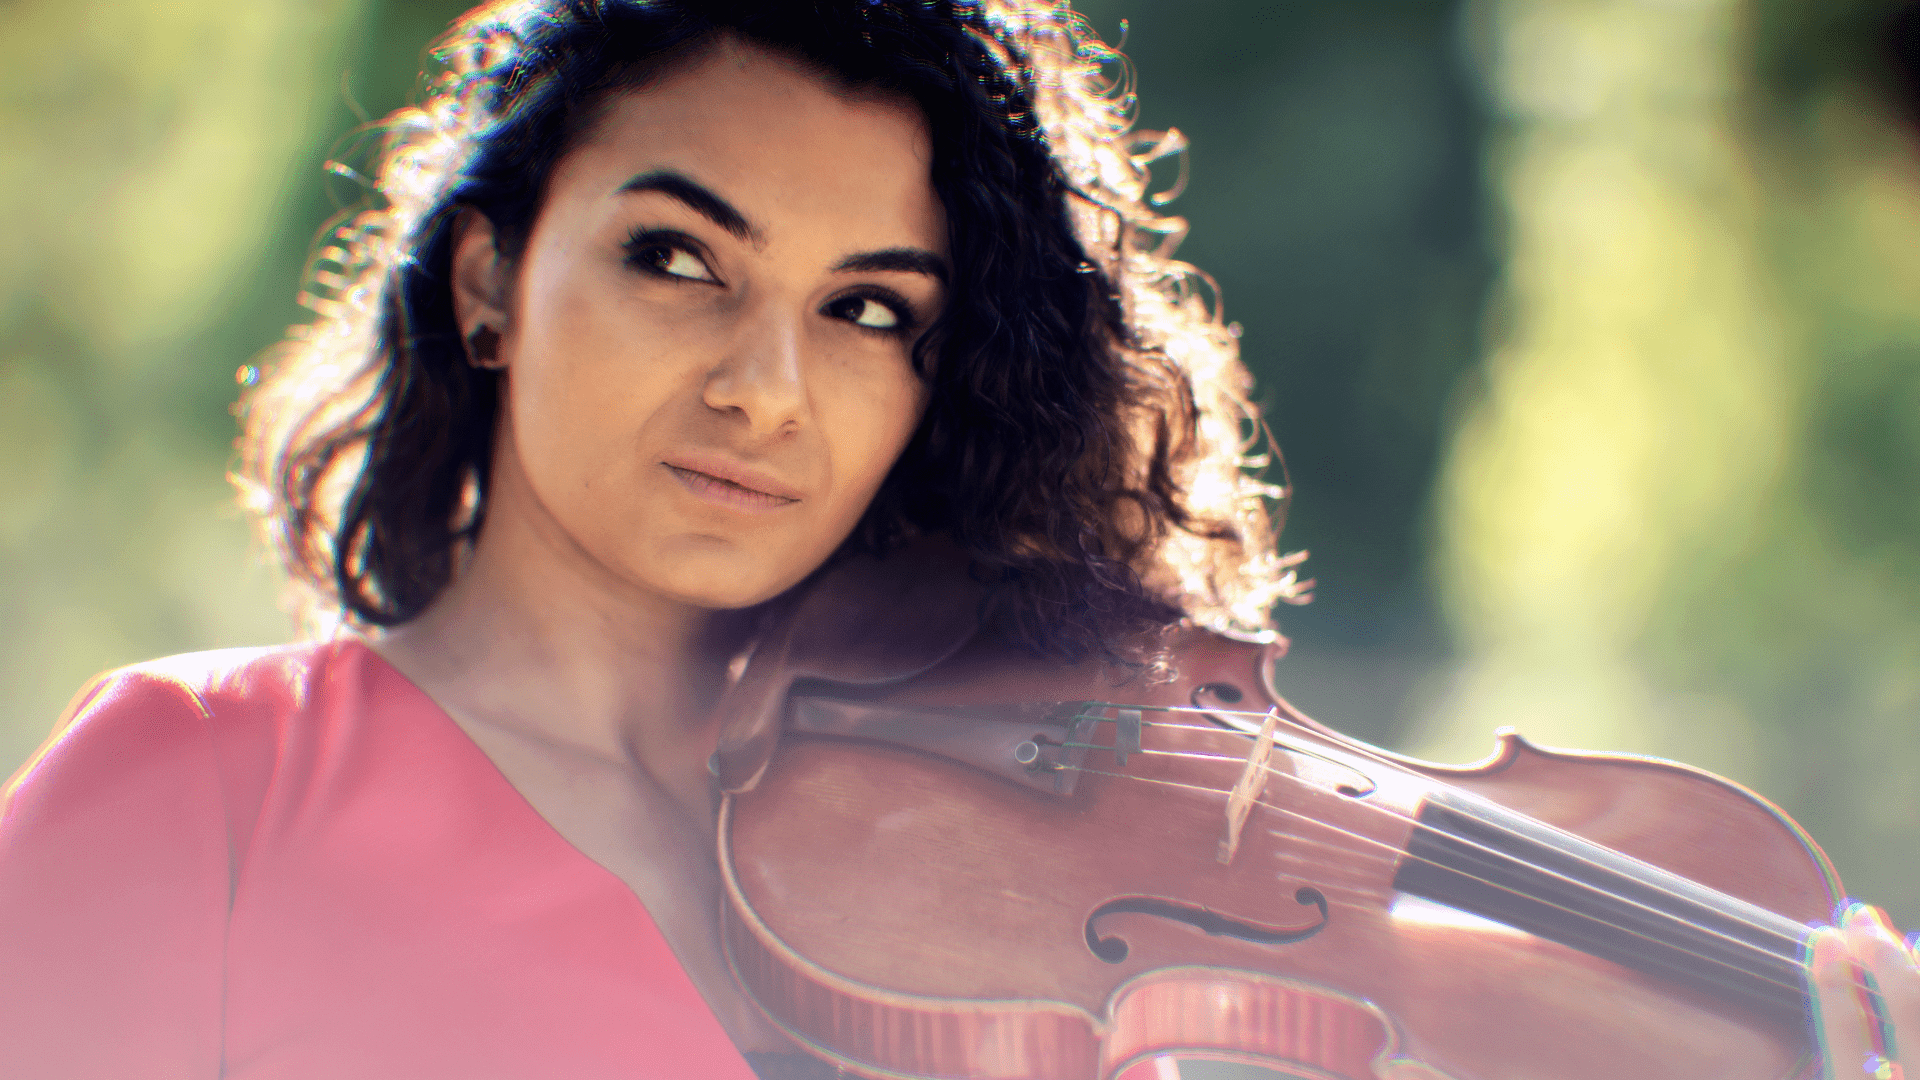 Beautiful female classical violinist Nune Melik holding her violin with a meadow in the background.